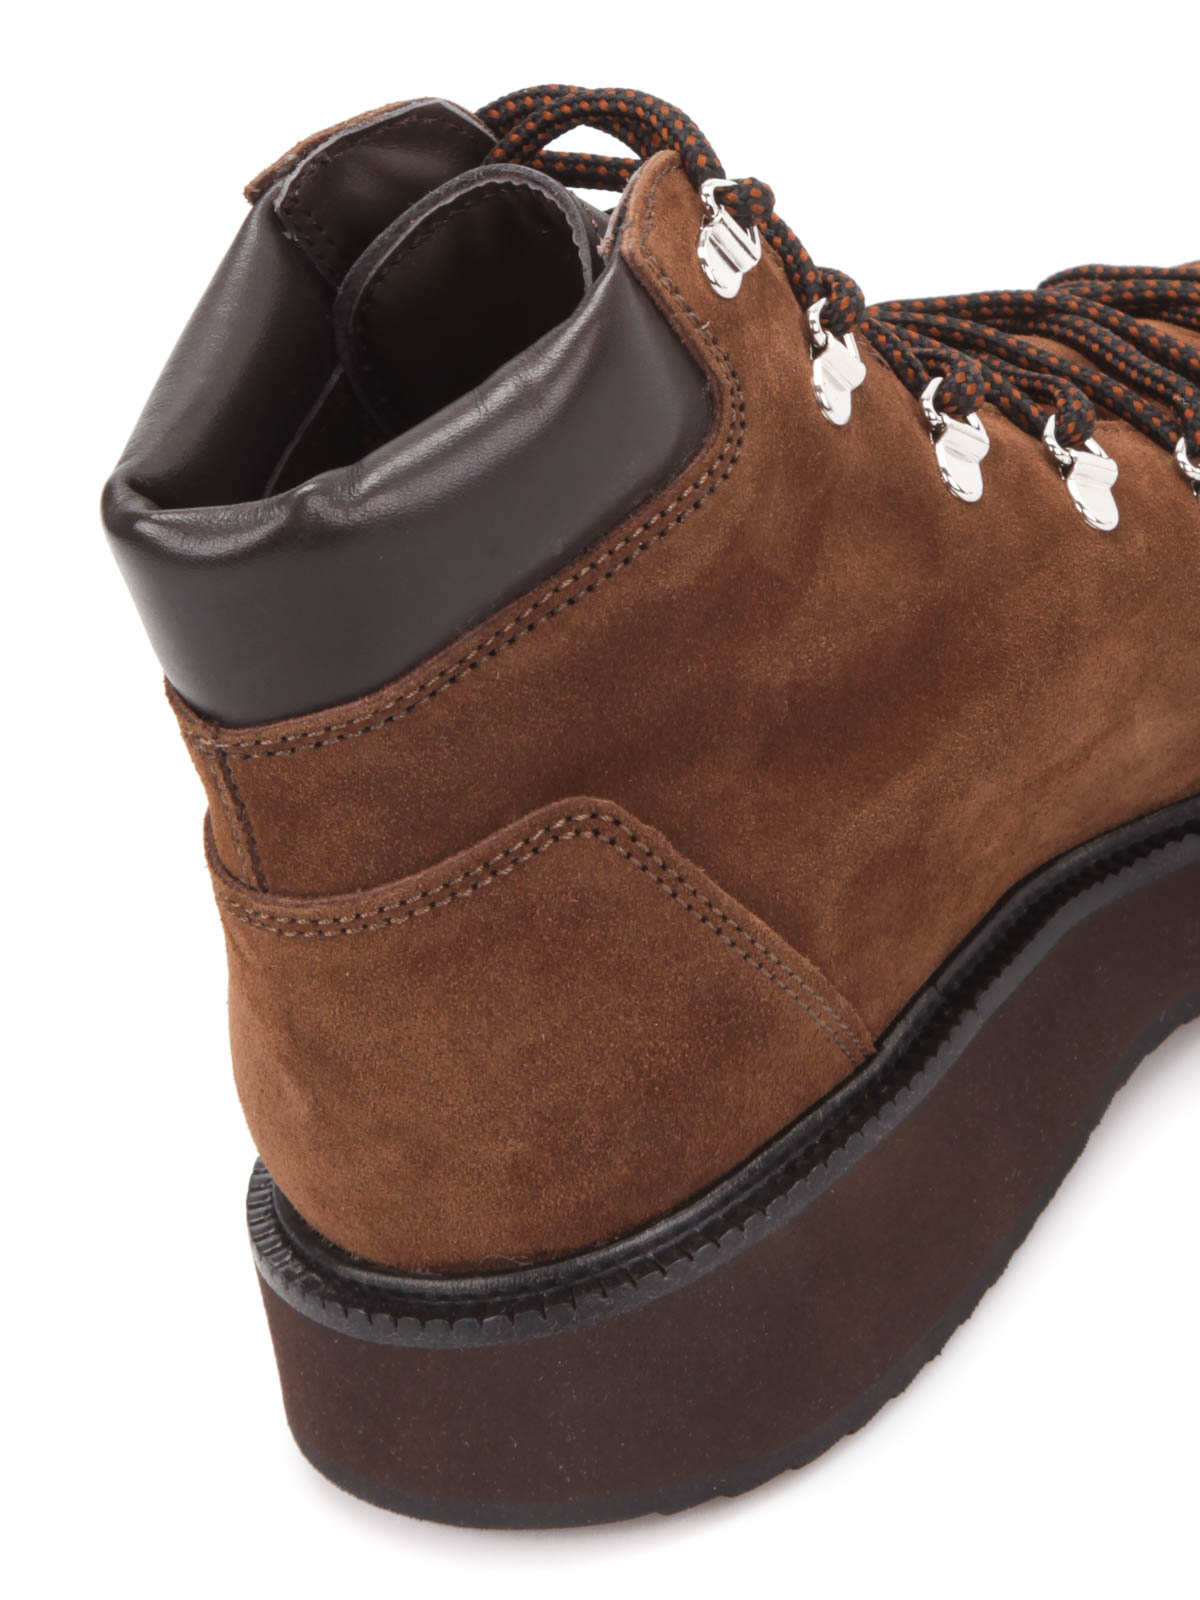 Hogan - H271 Route Hiking boots - ankle boots - HXM2710S6304VA4184